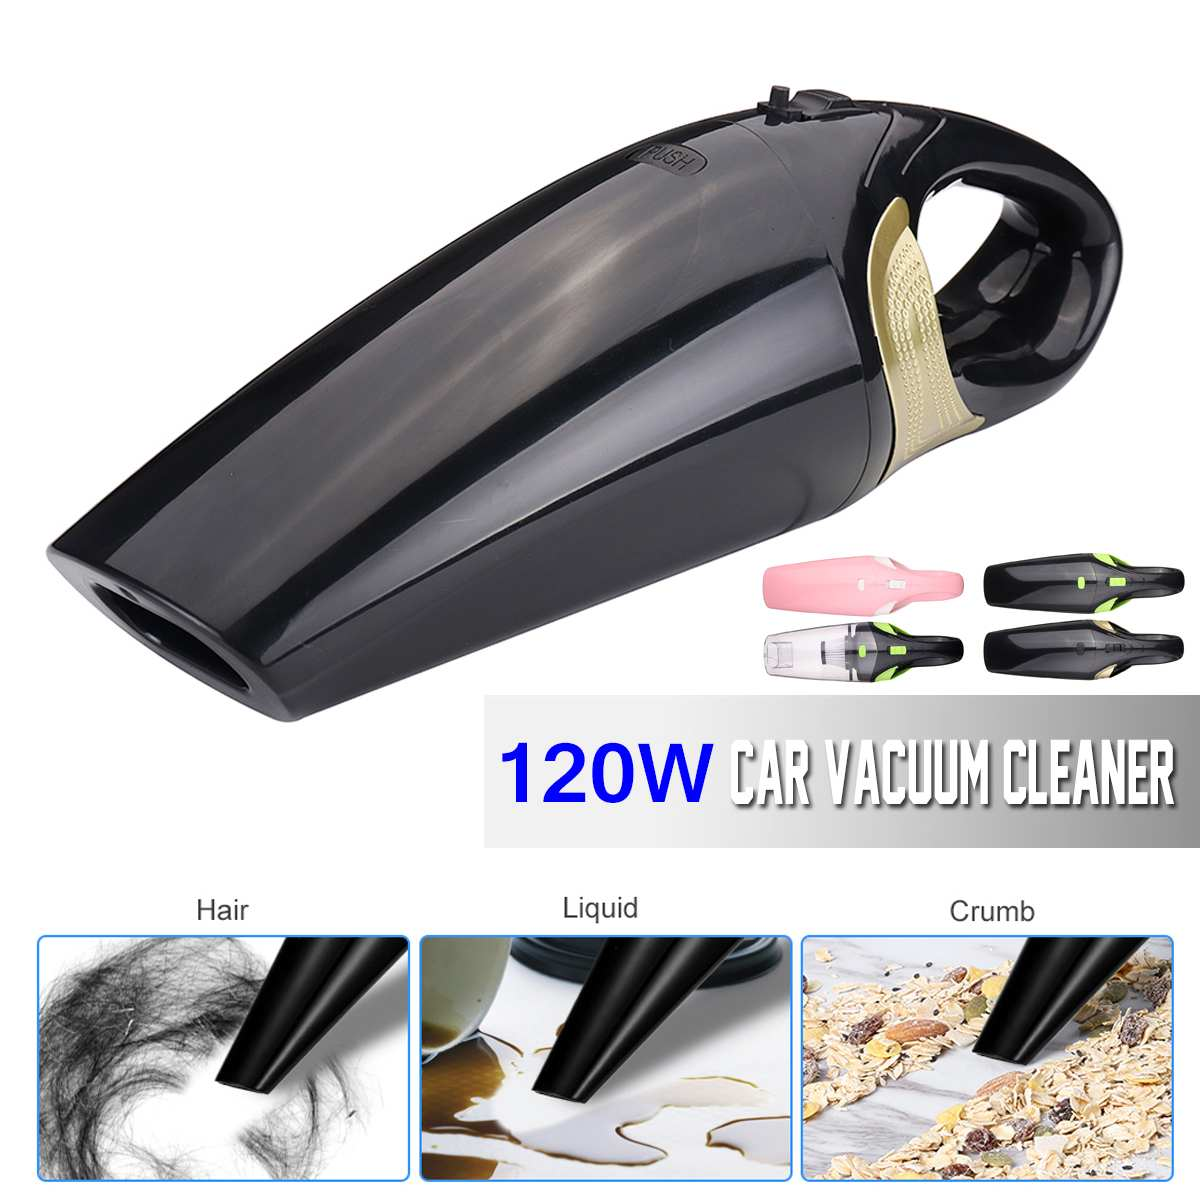 120W Handheld Car Home Cordless Rechargeable Dust Vacuum Cleaner Dry Wet Use Colors Detachable For Car House Cleaning Filtration120W Handheld Car Home Cordless Rechargeable Dust Vacuum Cleaner Dry Wet Use Colors Detachable For Car House Cleaning Filtration